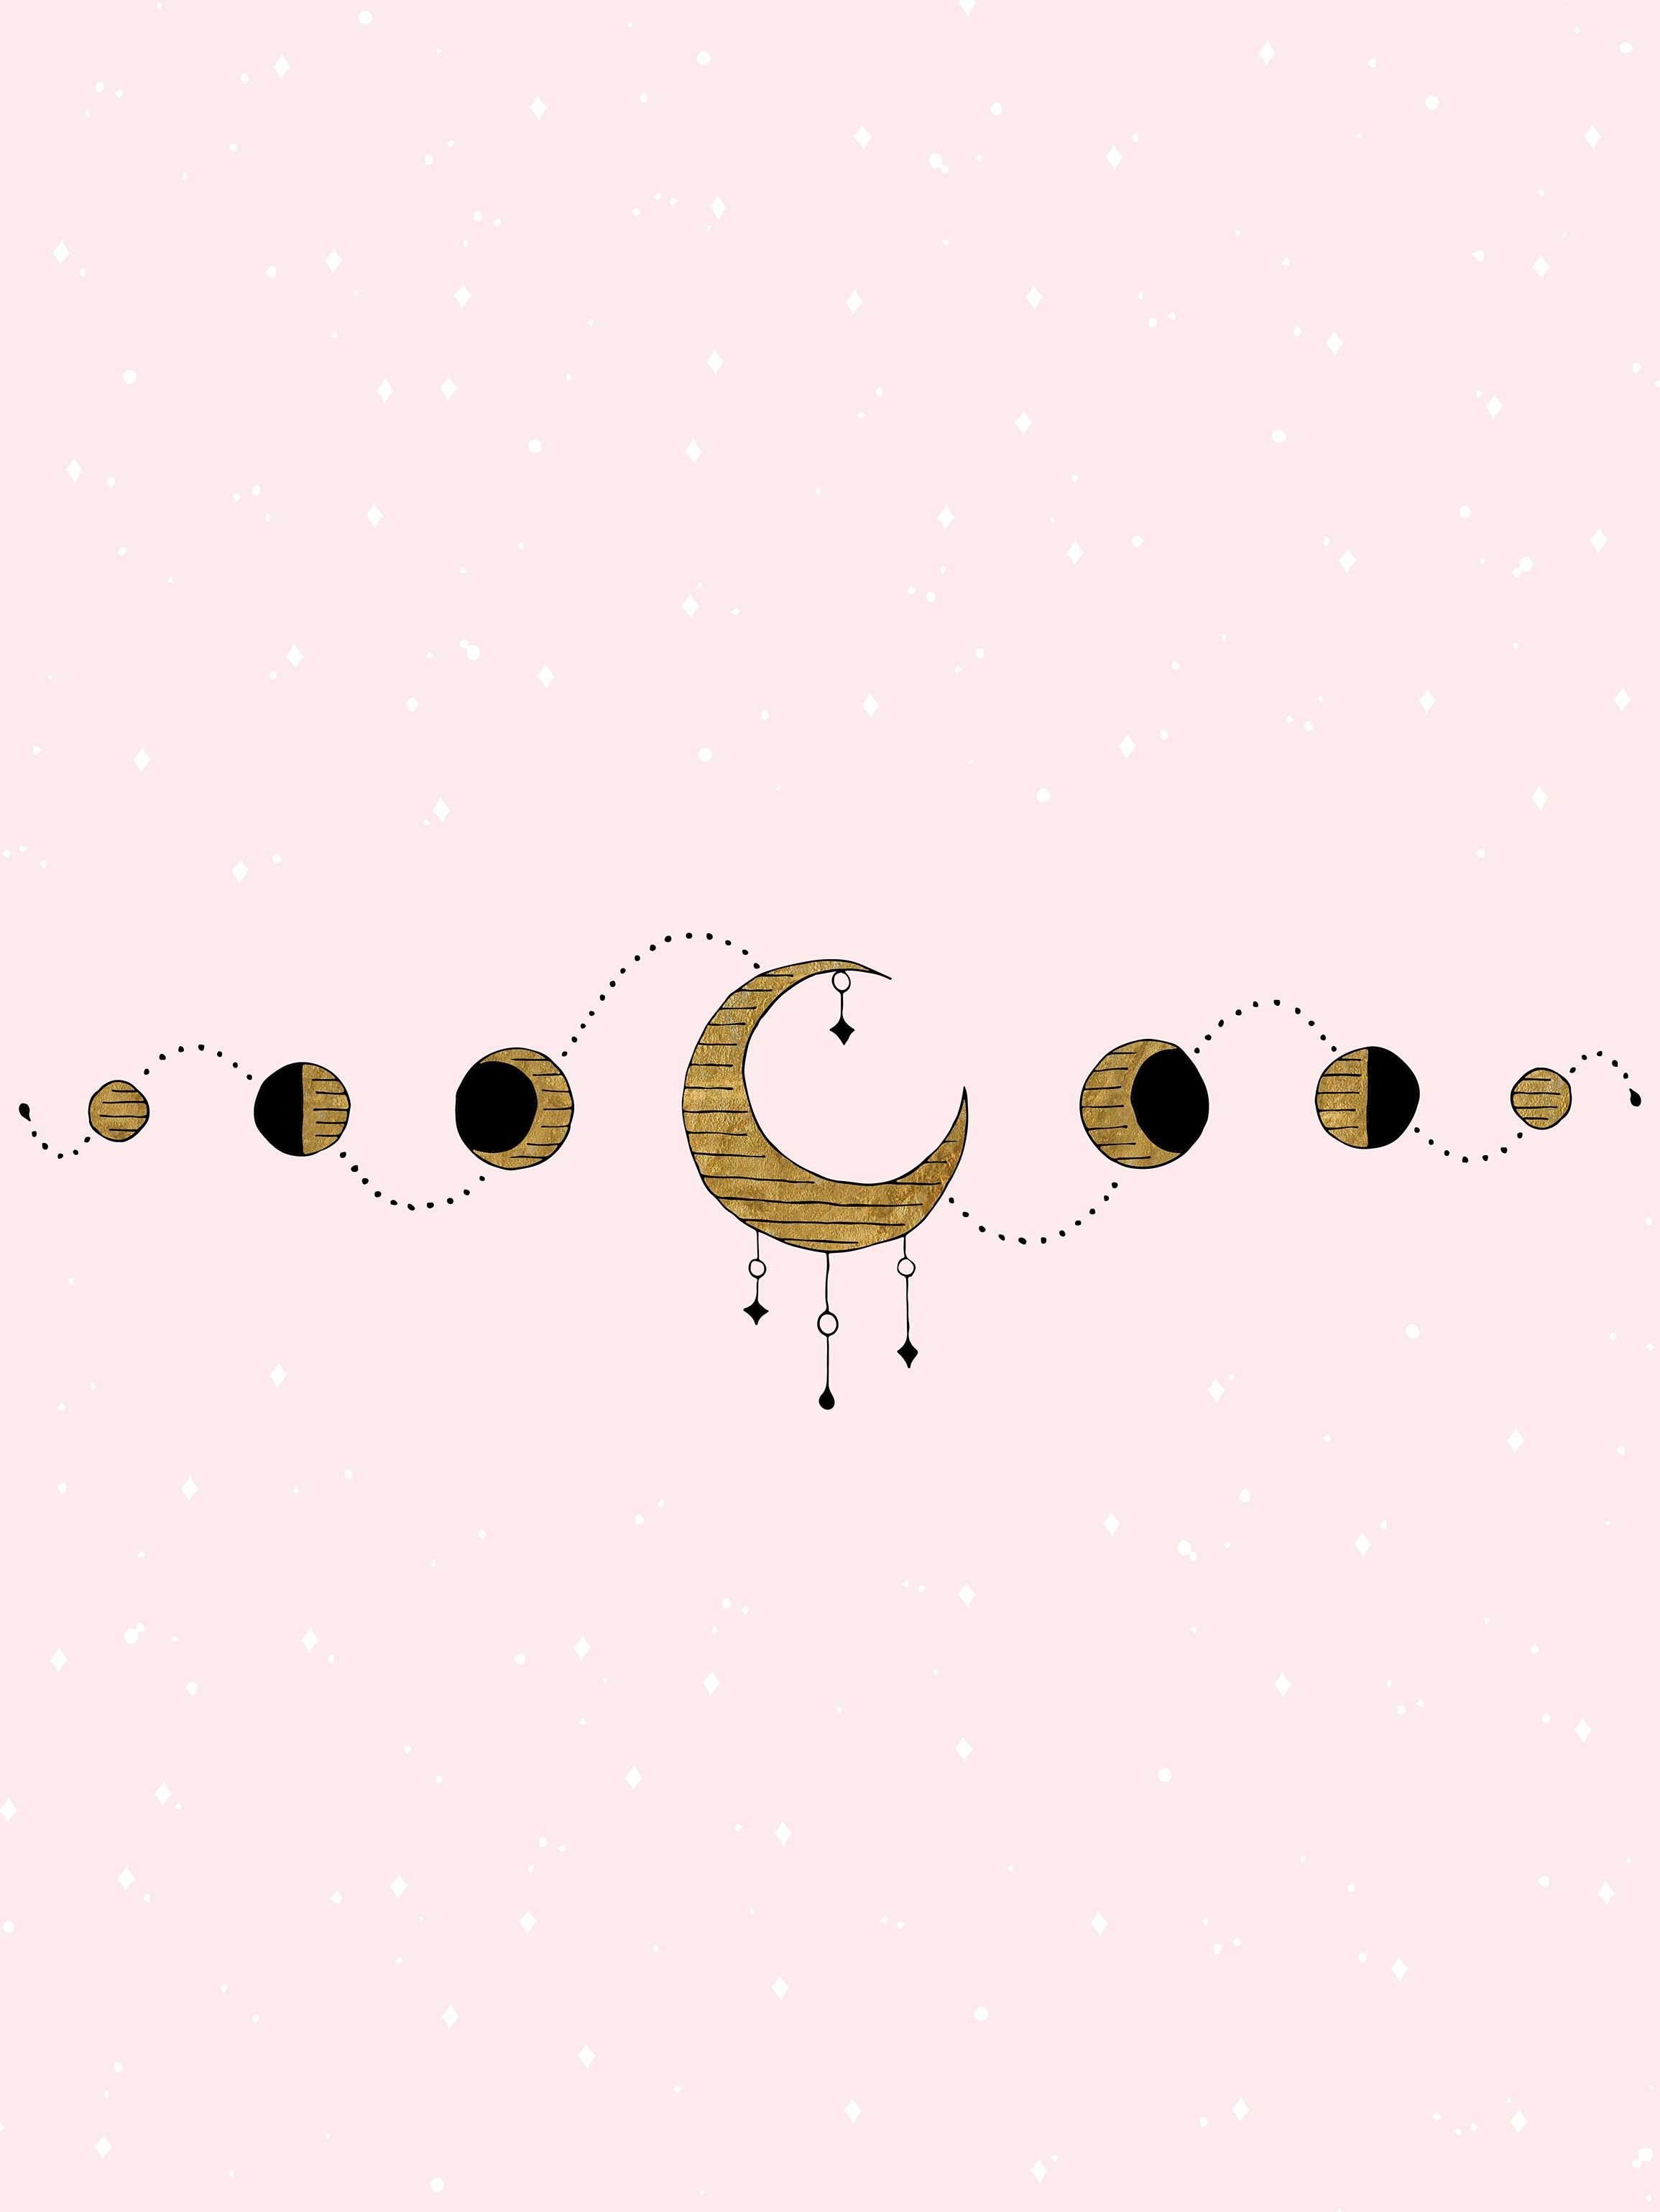 Moon Phase Desktop And Phone Wallpaper Witch Wallpaper Kawaii Wallpaper Phone Wallpaper